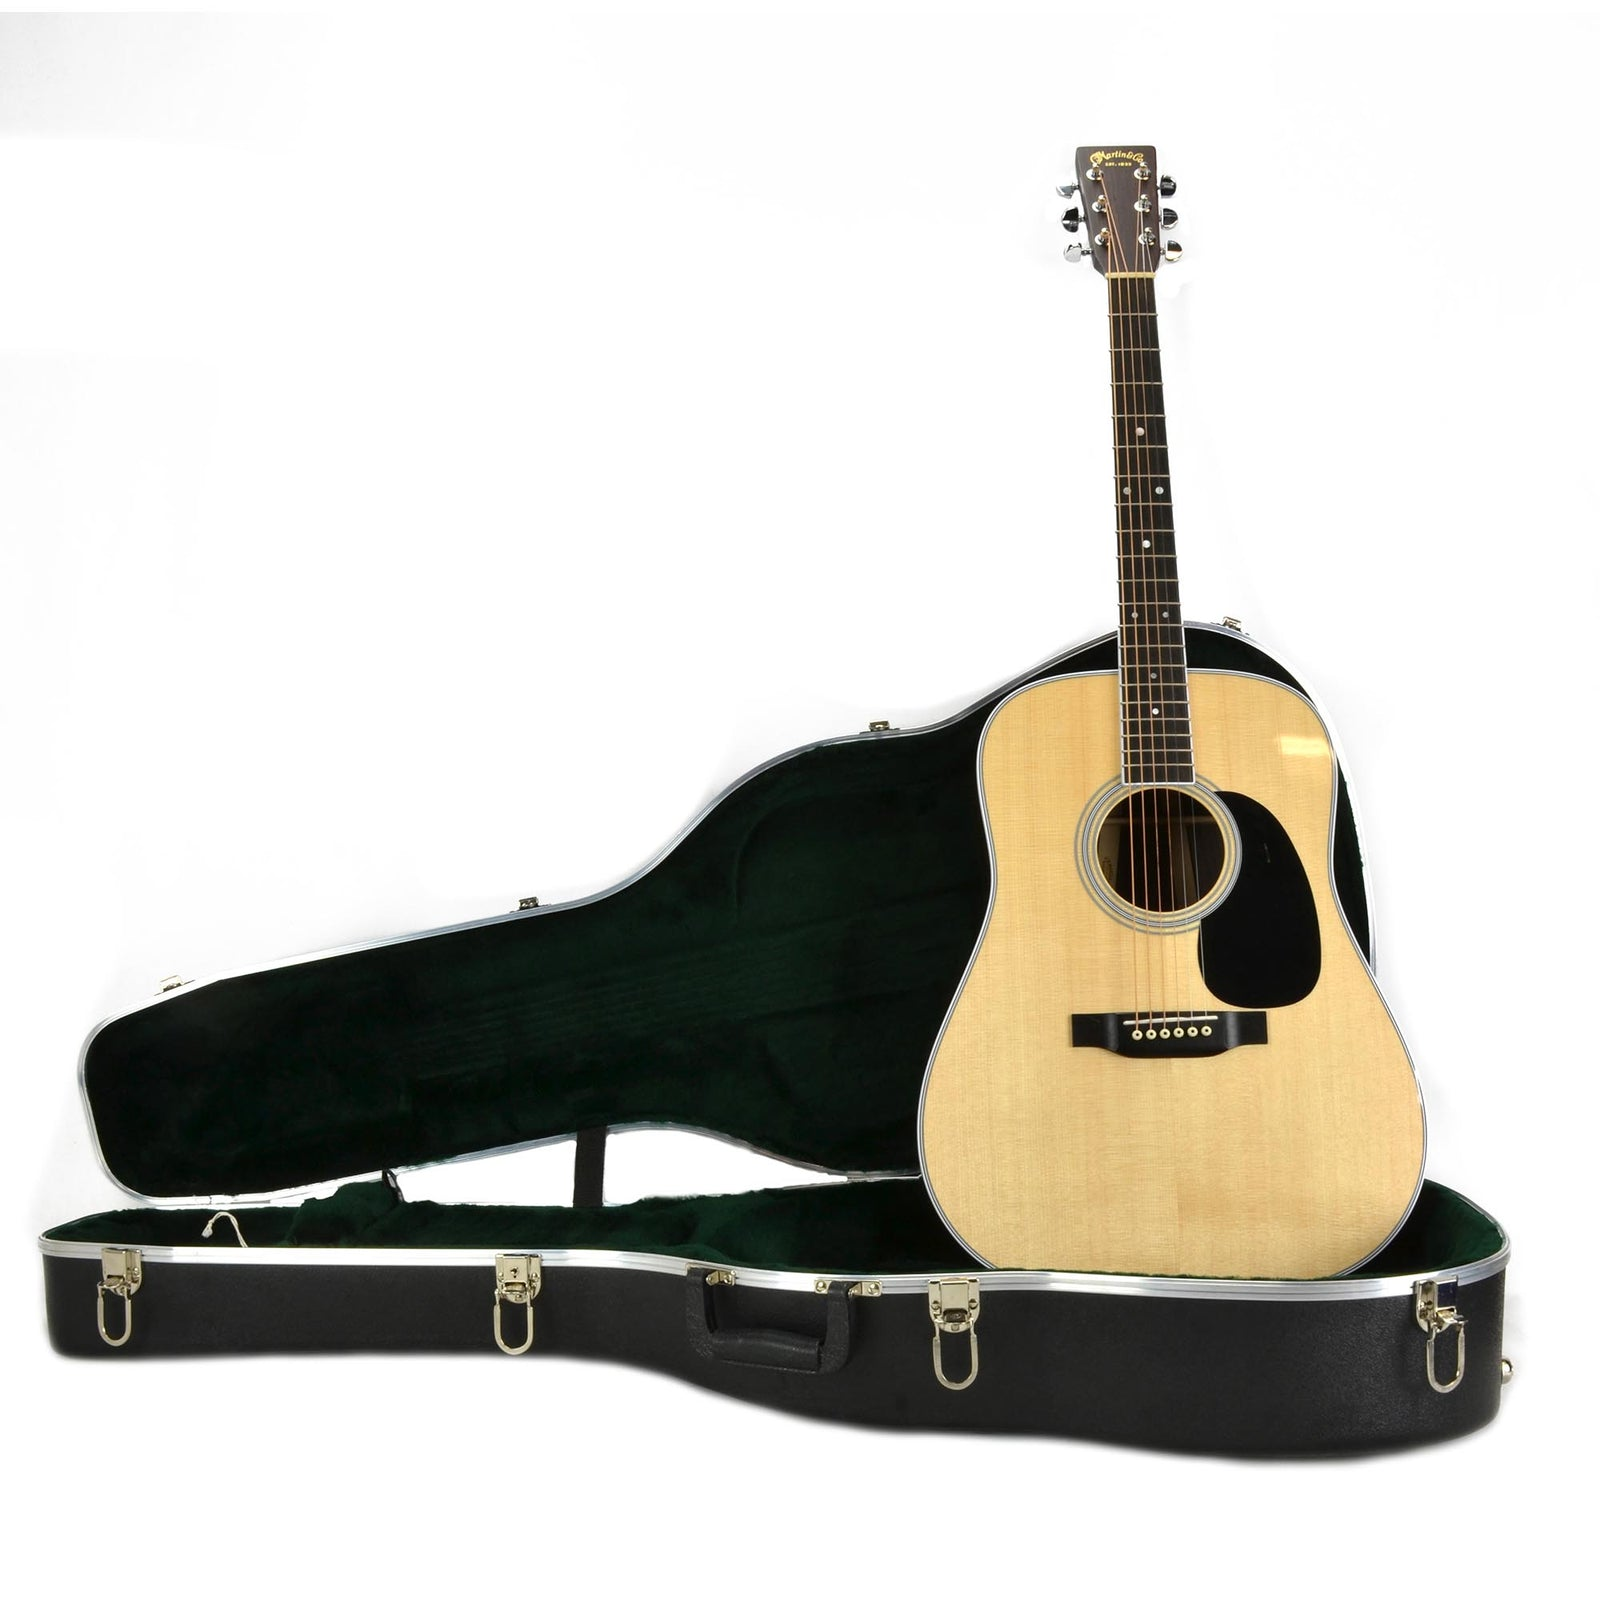 Martin D-35 Dreadnought - Used - Image: 10